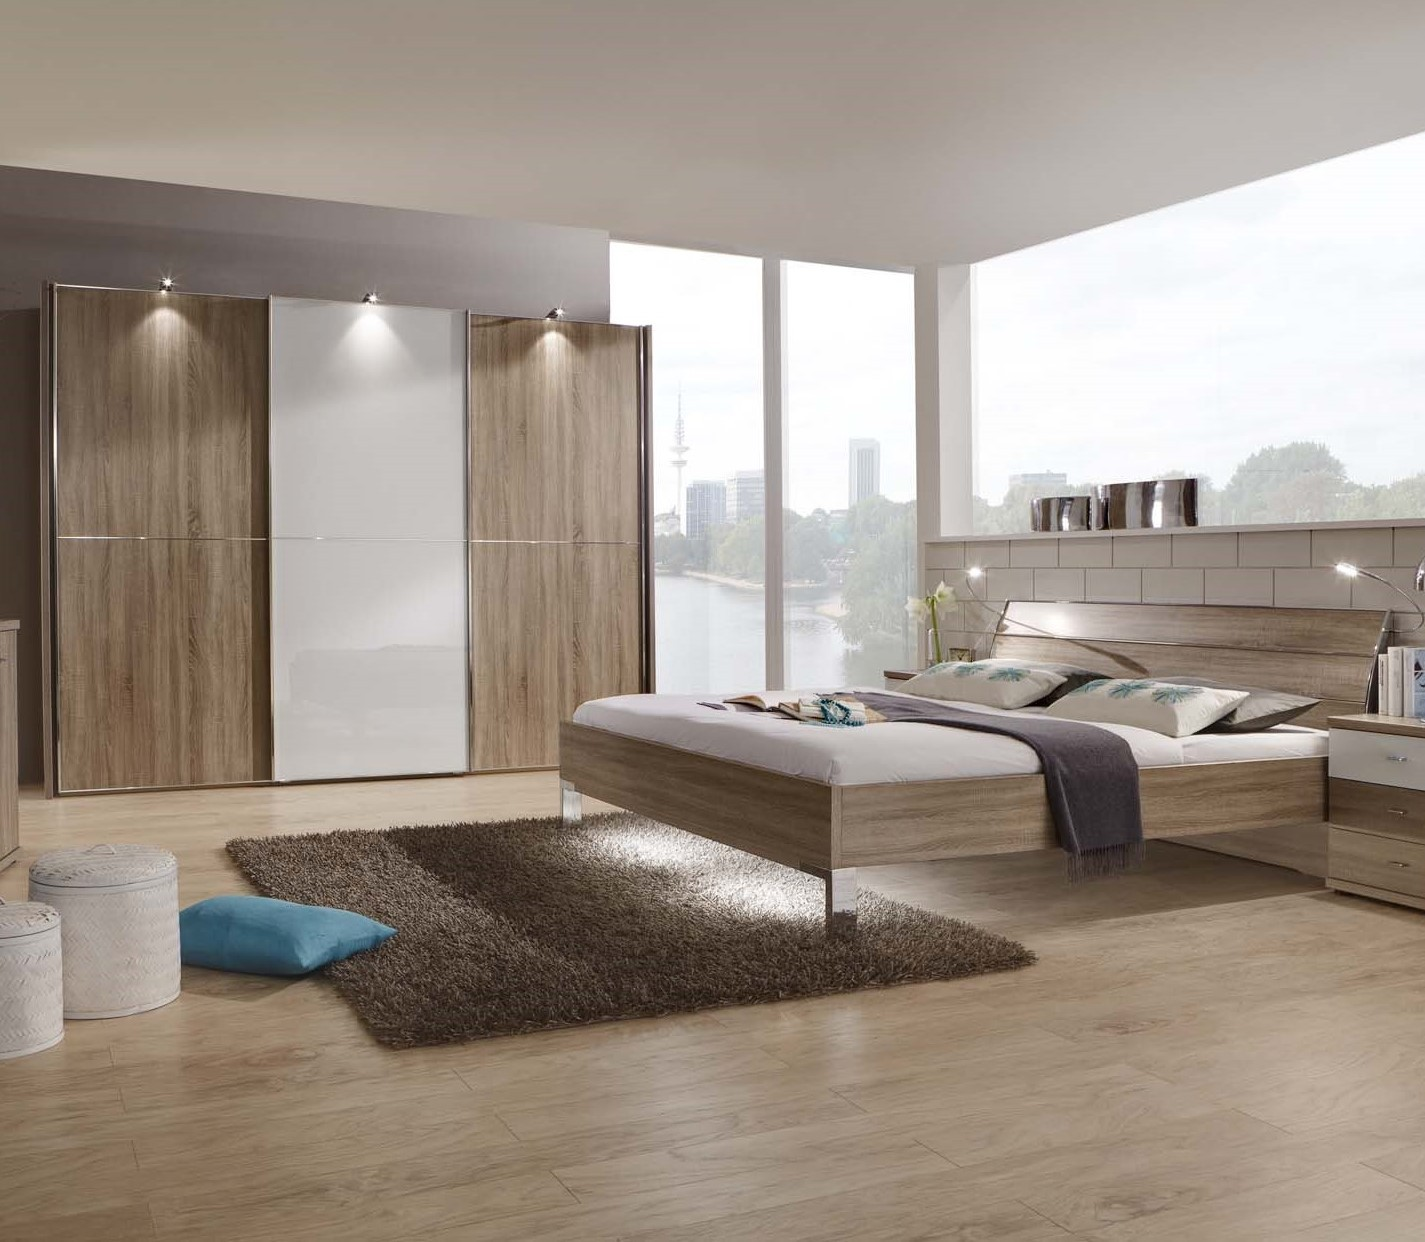 Bedroom Furniture Sets Bedroom Furniture And Decorating Ideas Bedroom Wall Art For Girls Bedroom Paint Schemes Colors: Contemporary Bedroom Furniture Sets » SAMARA By Stylform